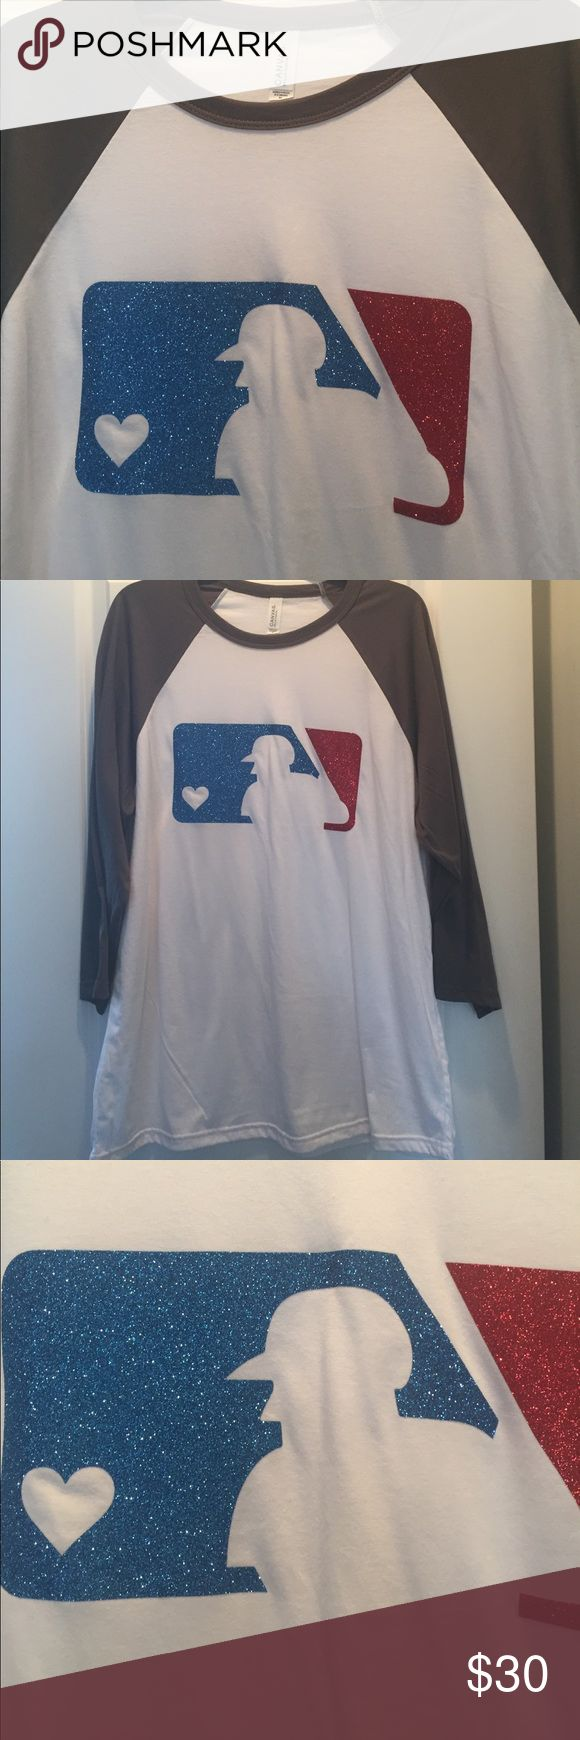 Custom glitter baseball tee with ❤️️ fits 14/16 I ordered this custom, it came in beautiful-exactly what I wanted, so soft and comfy & adorable, however it's much too large for me. I can't return it. I'm ordering another in a smaller size as soon as I sell this. I wear between a 12 and a 14 and this would definitely fit a 14 and 16. Very loose fit soft three-quarter sleeves the T-shirt is excellent quality and the screen is a beautiful sturdy glitter with the heart cut out of the…